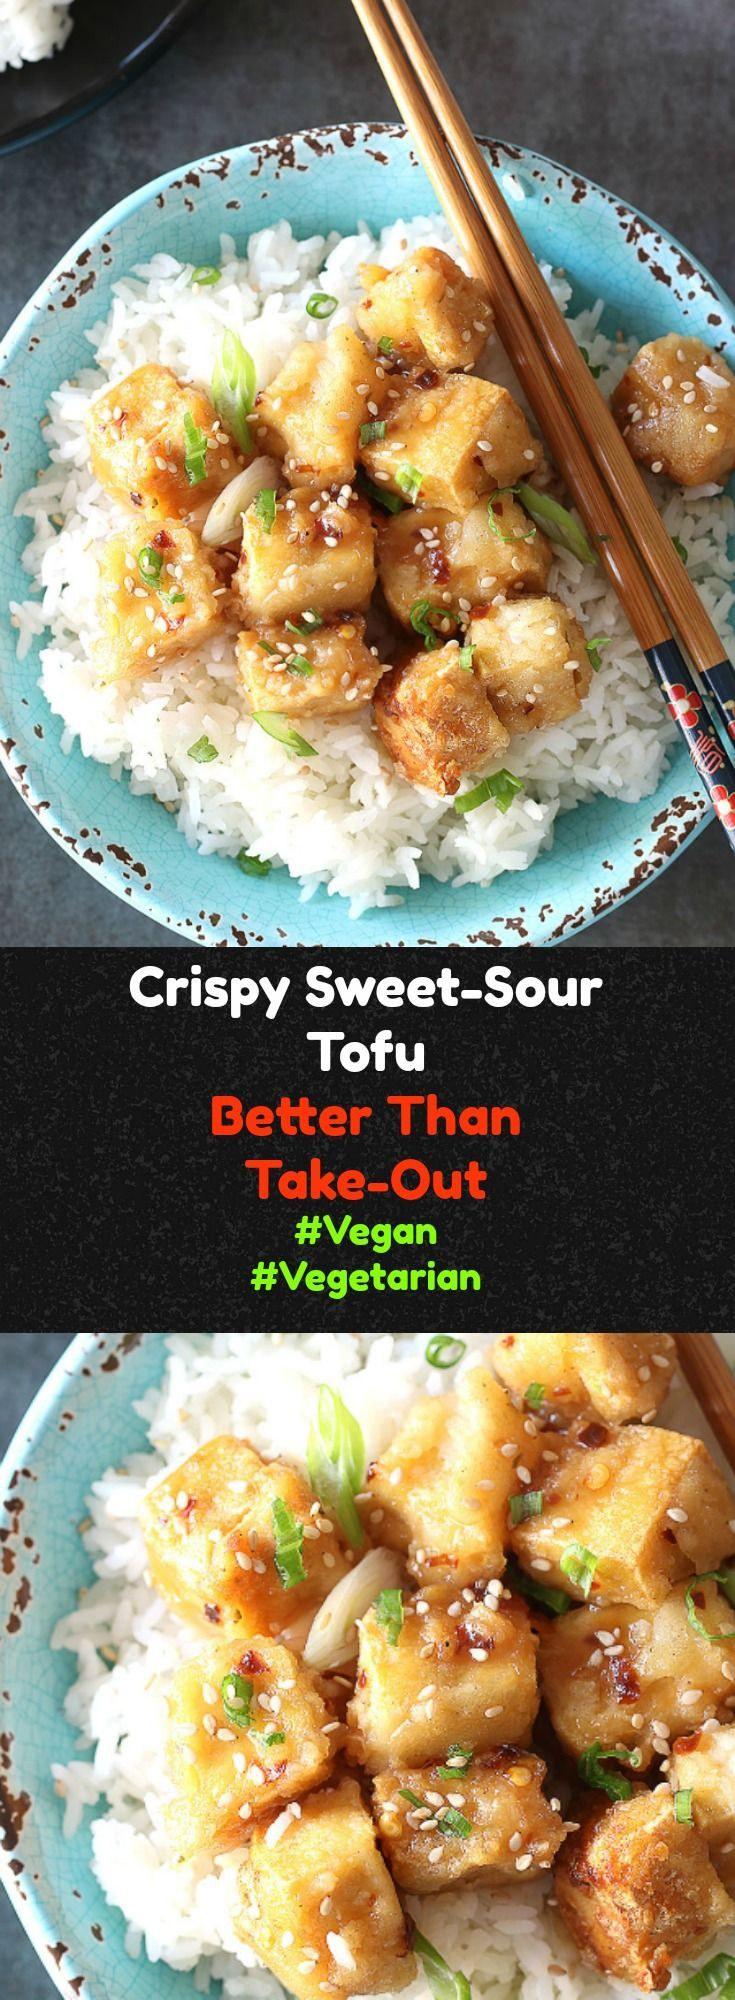 This Sweet Sour Crispy Tofu recipe is a satisfying 30-minute meal filled with sweet and sour Chinese flavors. This vegan recipe is the answer to the every day dinner challenge. A healthy weeknight dinner that everyone will love!